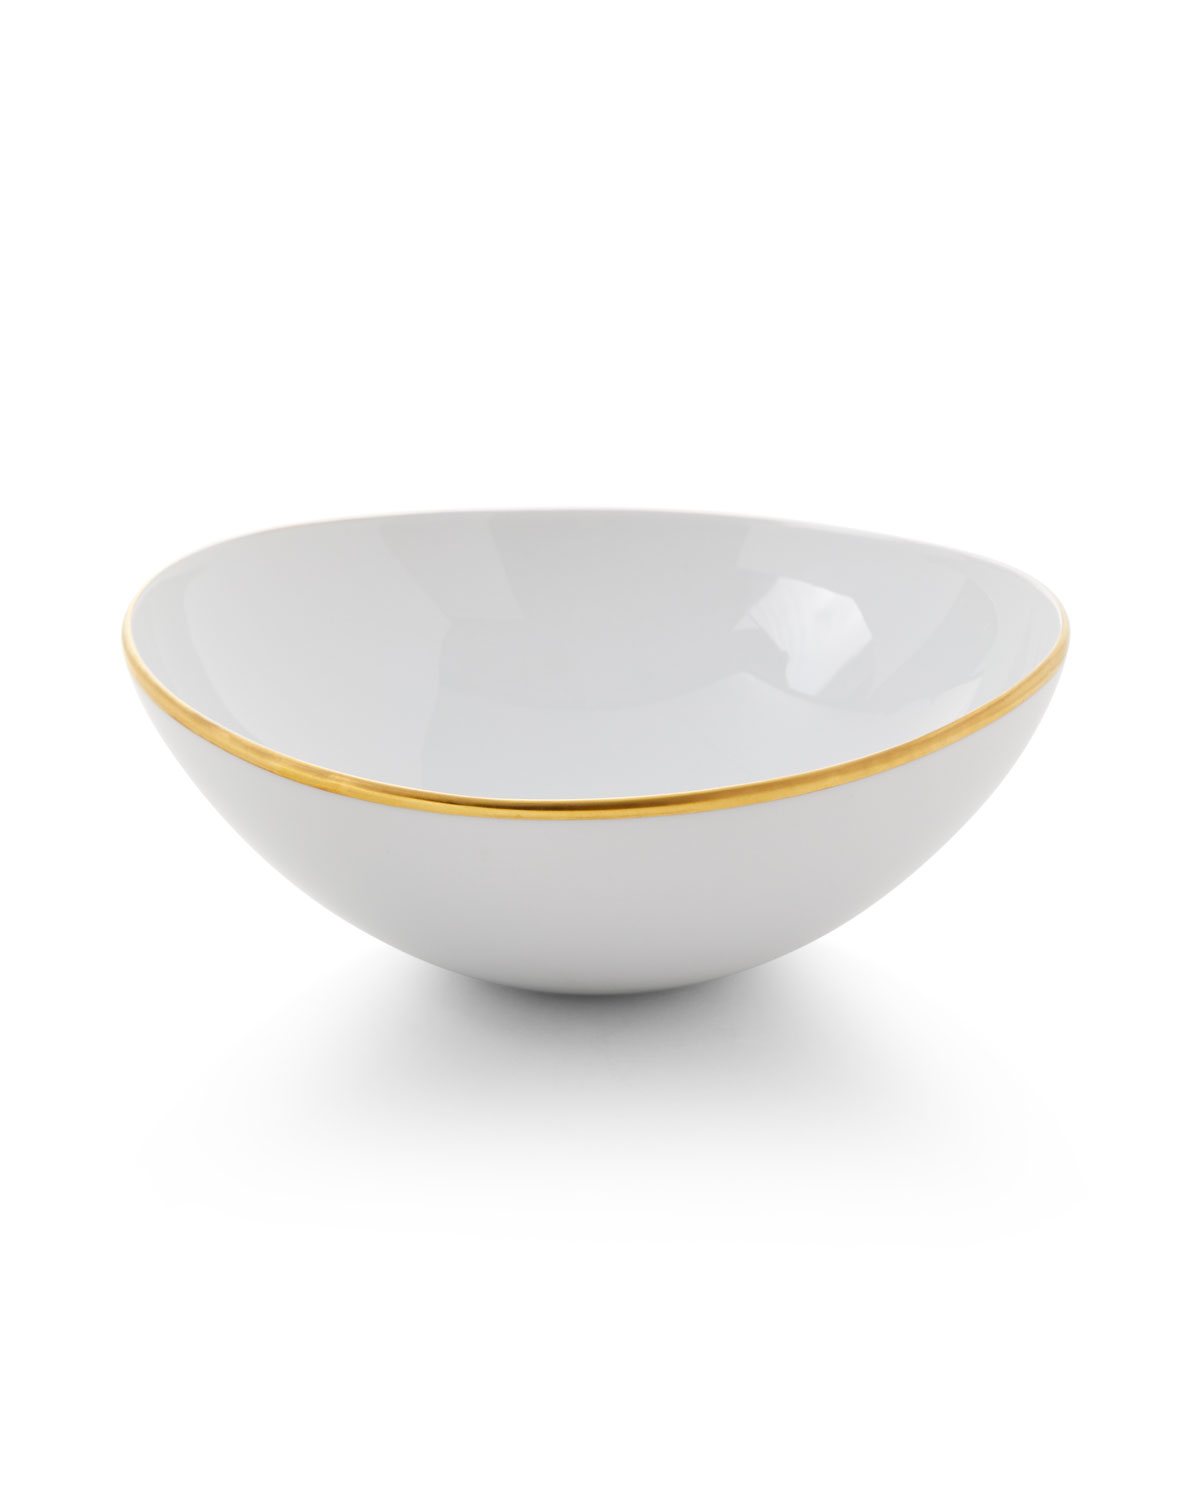 Anna Weatherley SIMPLY ELEGANT CEREAL BOWL